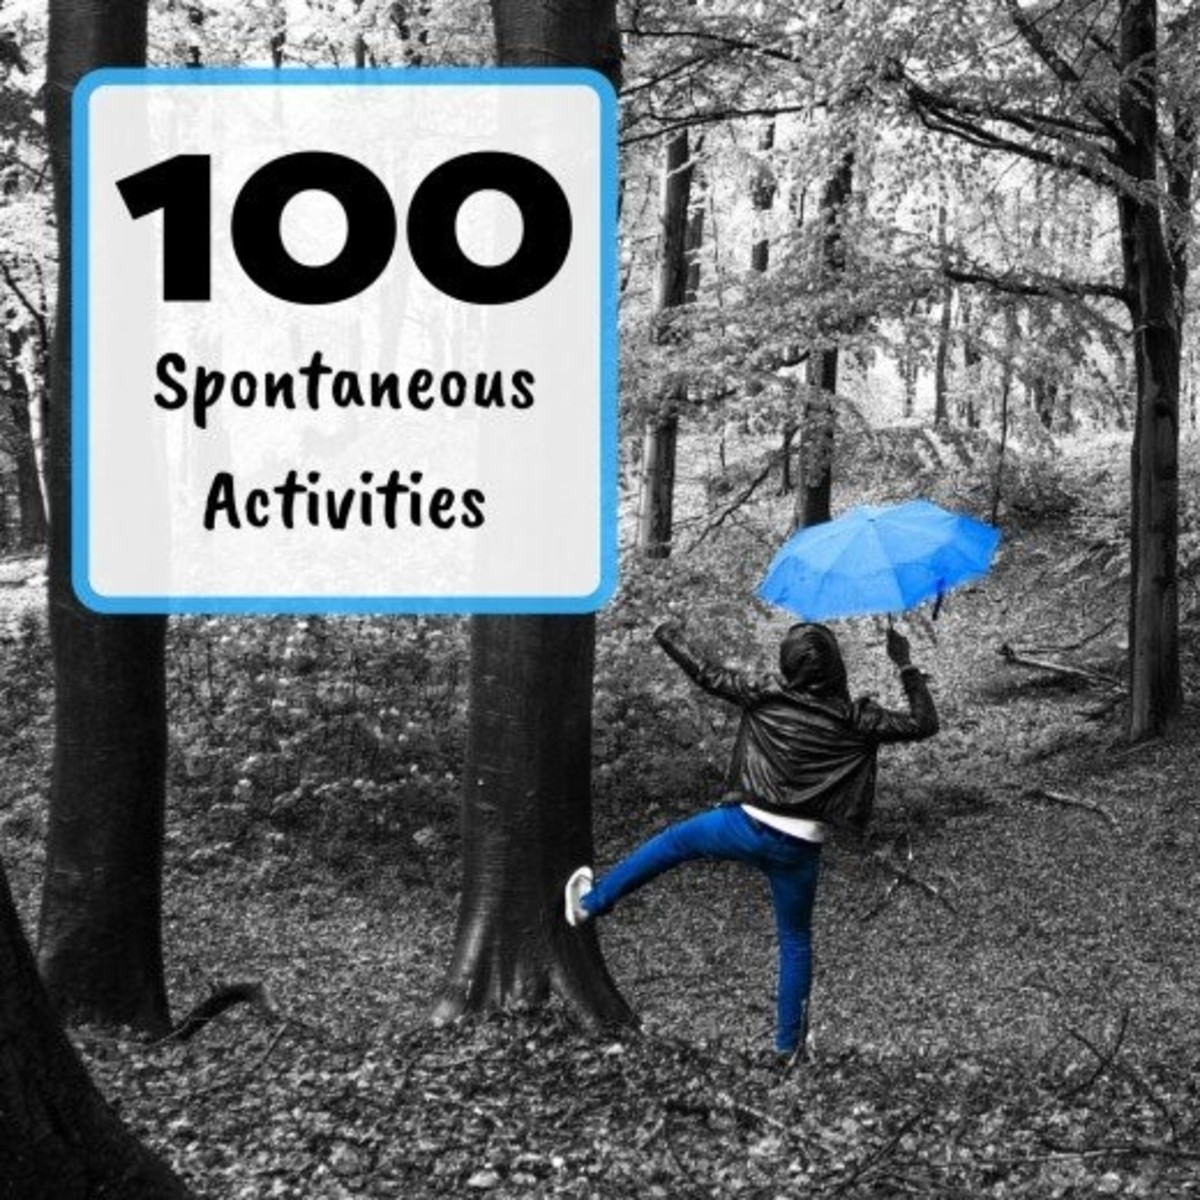 100+ Free and Spontaneous Things to do When Bored